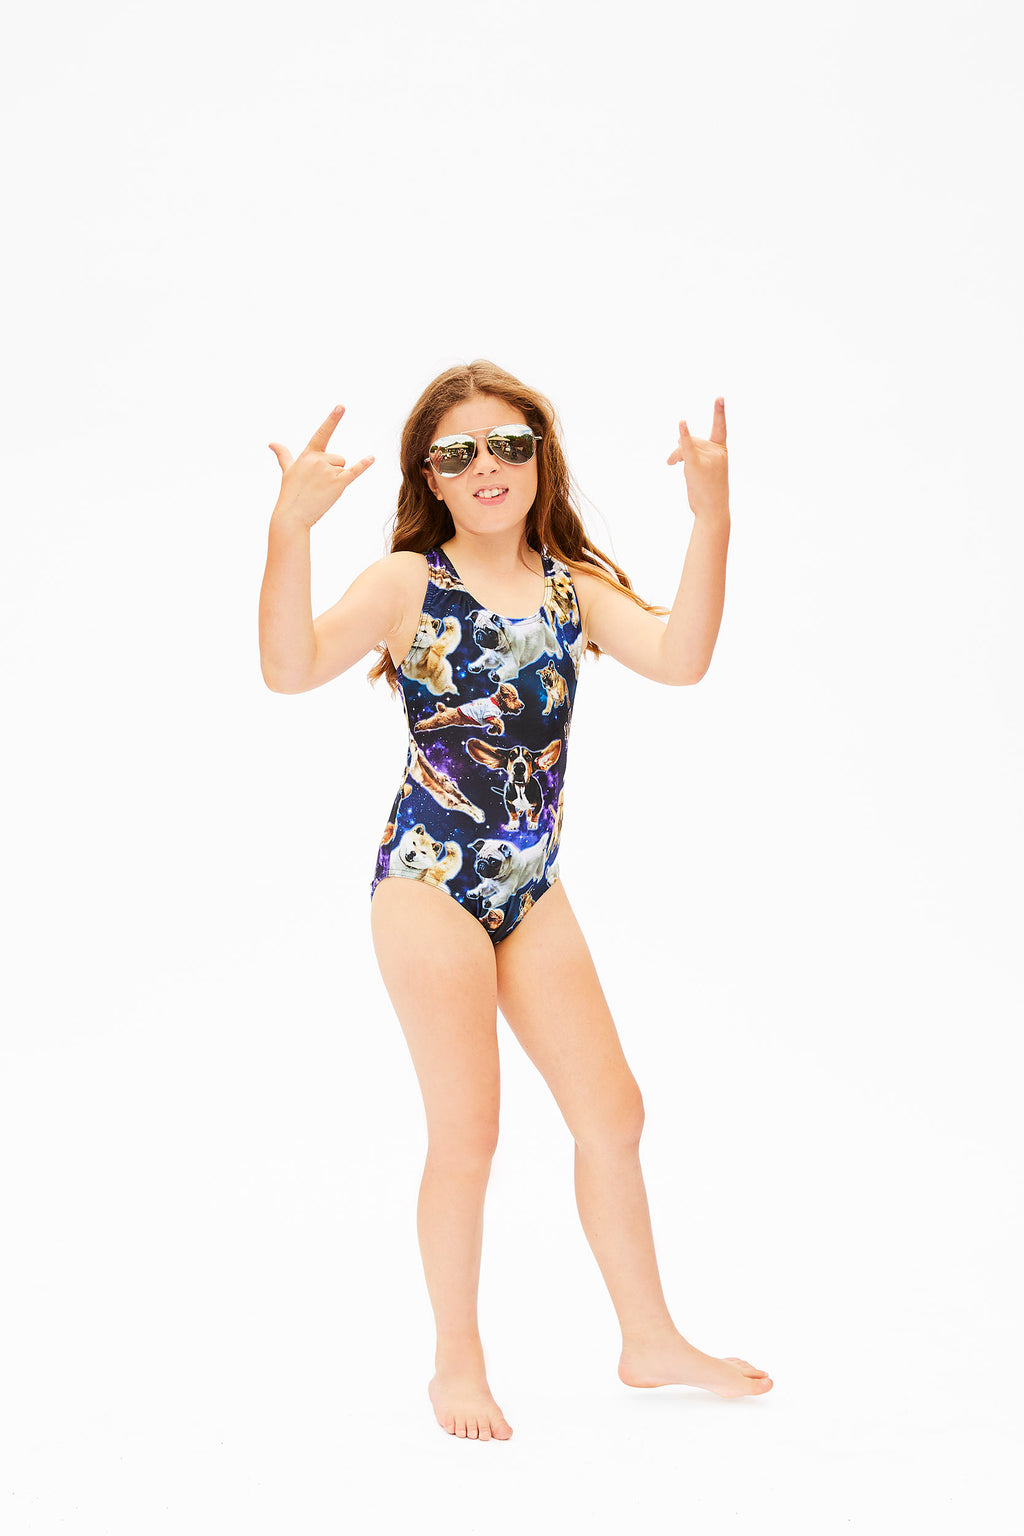 dog pattern one piece swimsuit for girls made in Canada by Bathing Belle Swimwear